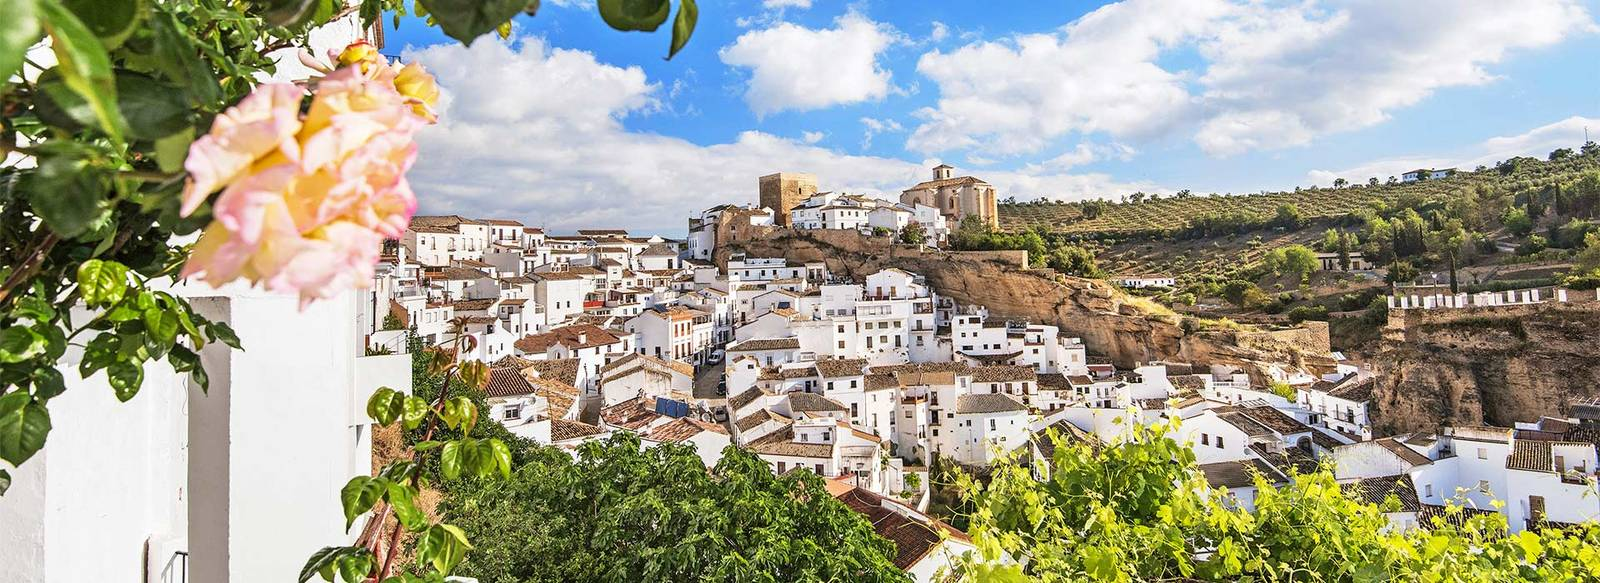 Il fascino dell' Andalusia